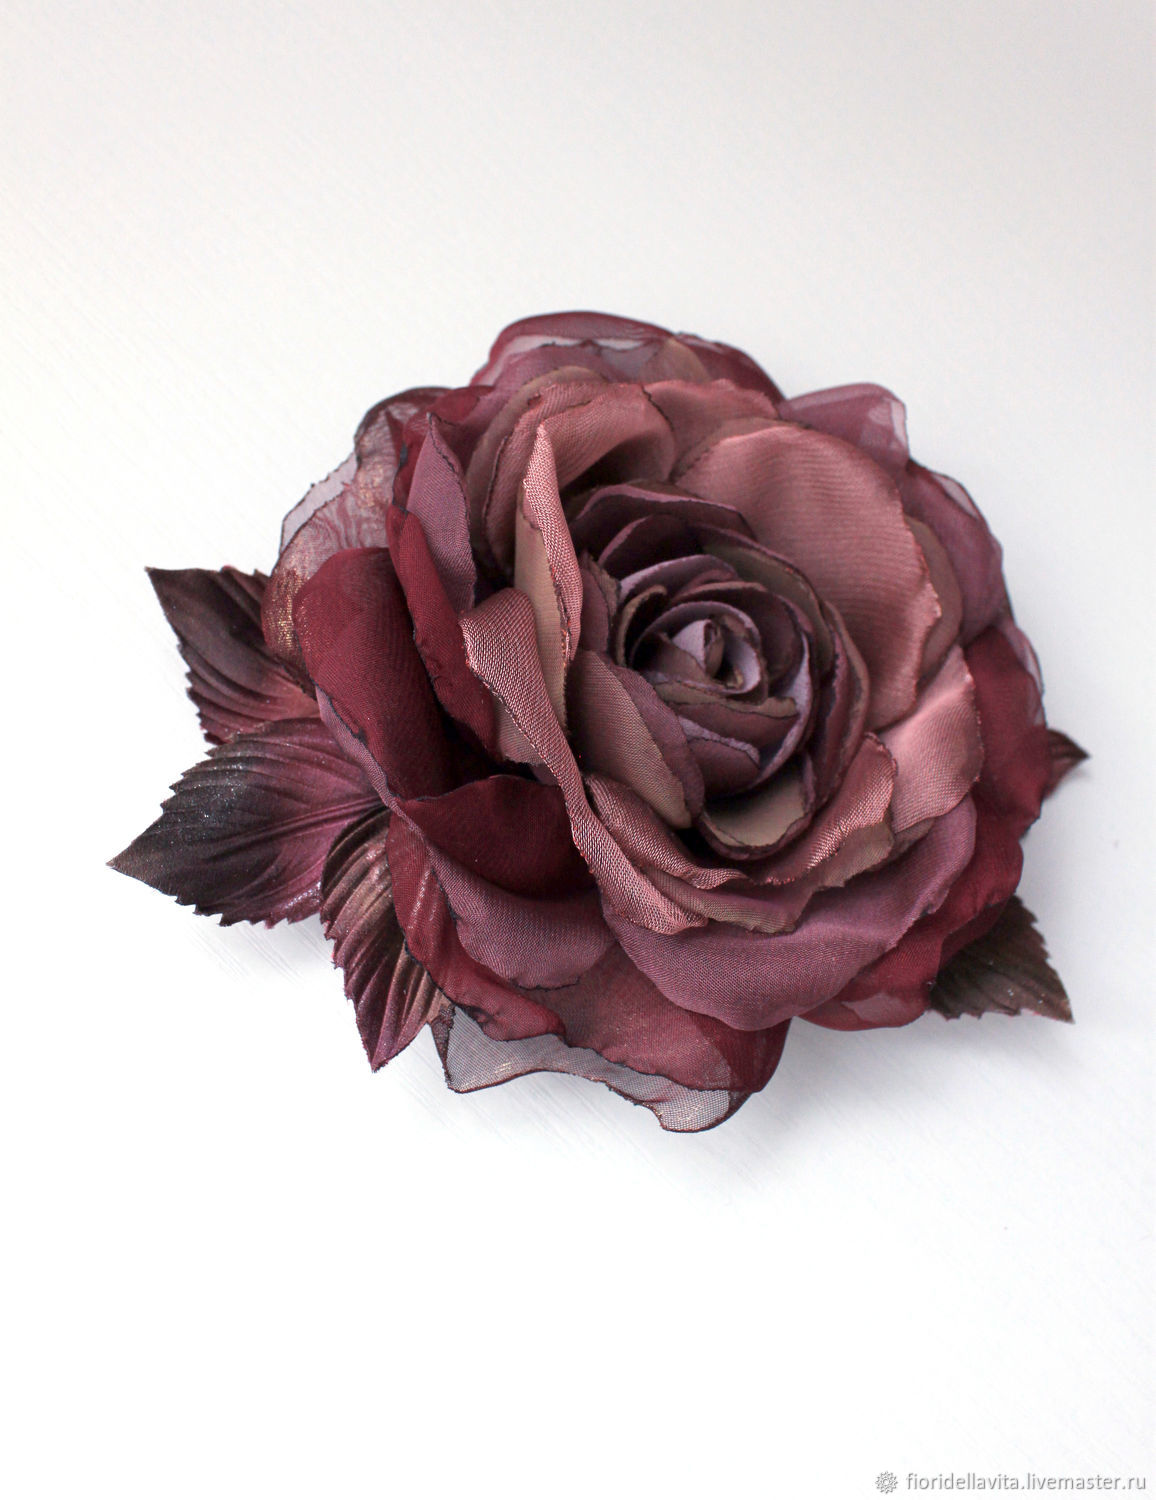 FLOWER brooch rose from the fabric ' mulled Wine', Brooches, Vidnoye,  Фото №1